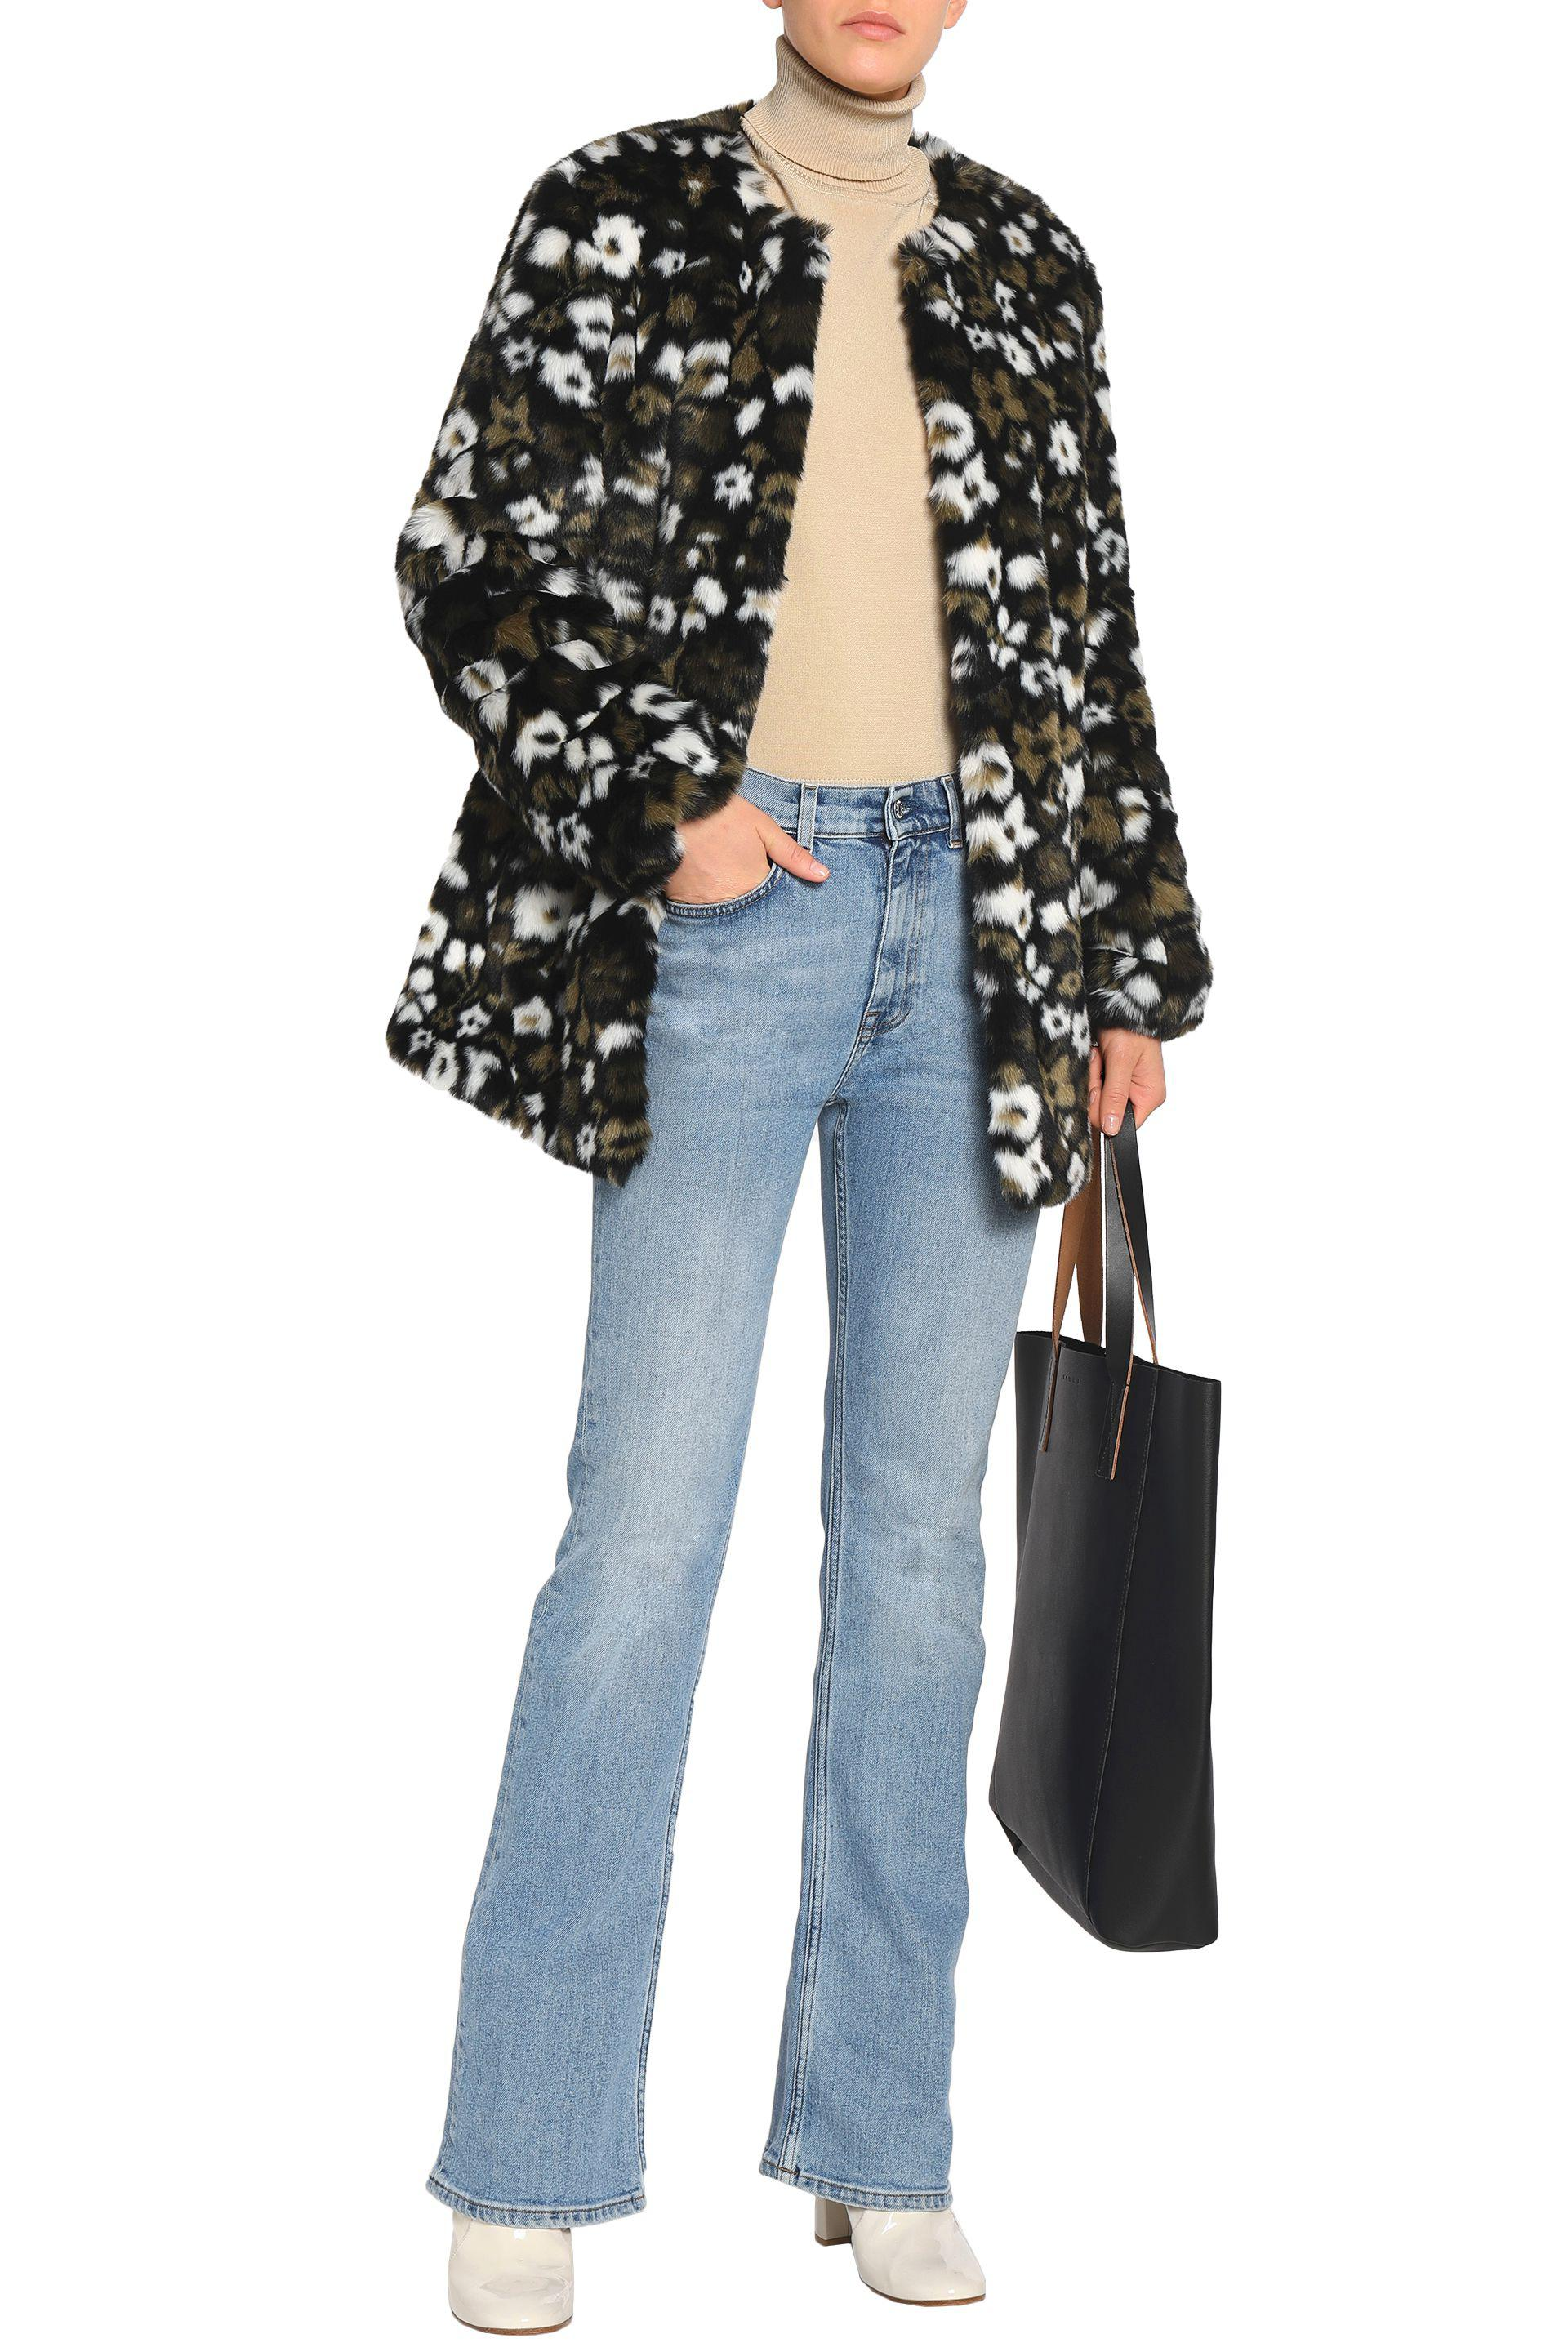 fddbcc92adc2e MICHAEL Michael Kors Floral-print Faux Fur Coat Army Green in Green ...